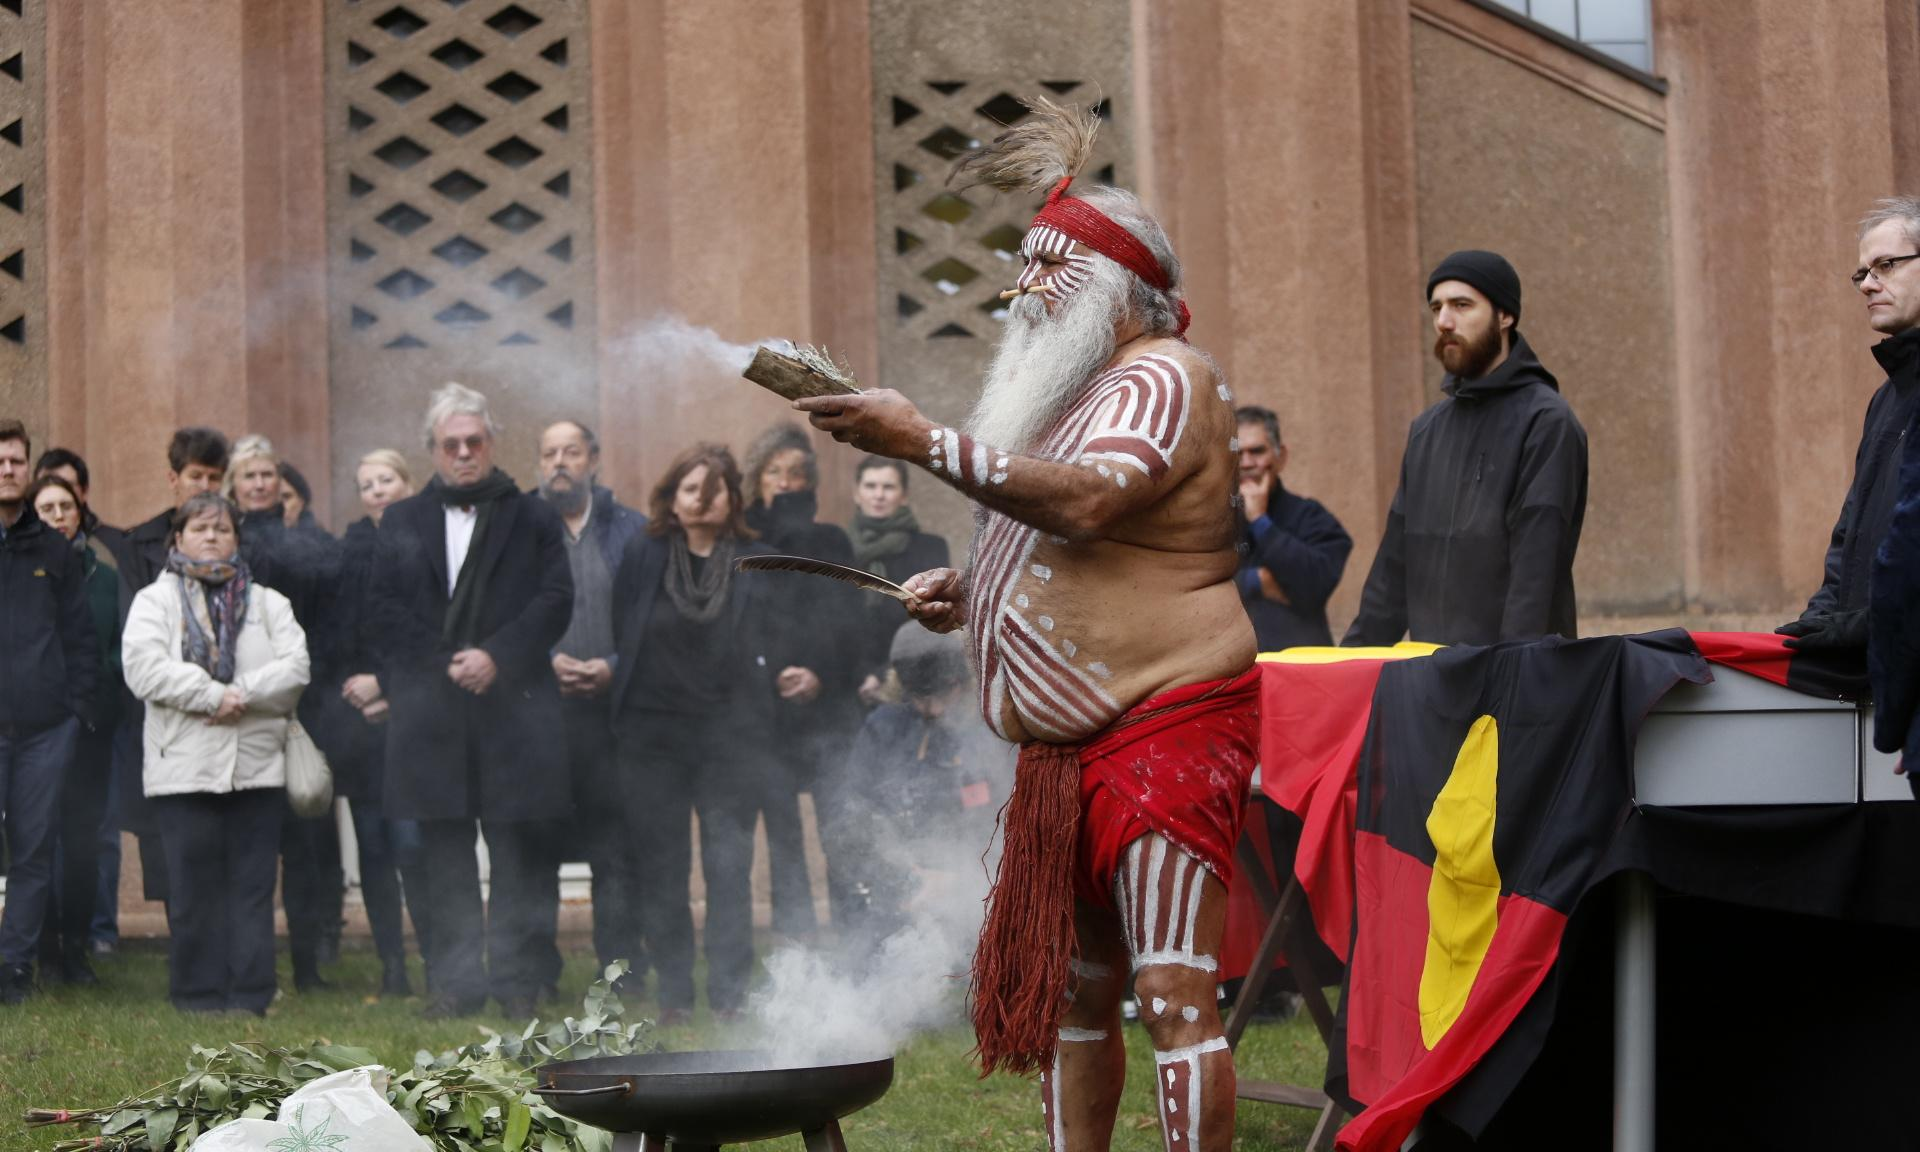 Cleansing ceremonies in Germany mark a homecoming and a shift in cultural understanding